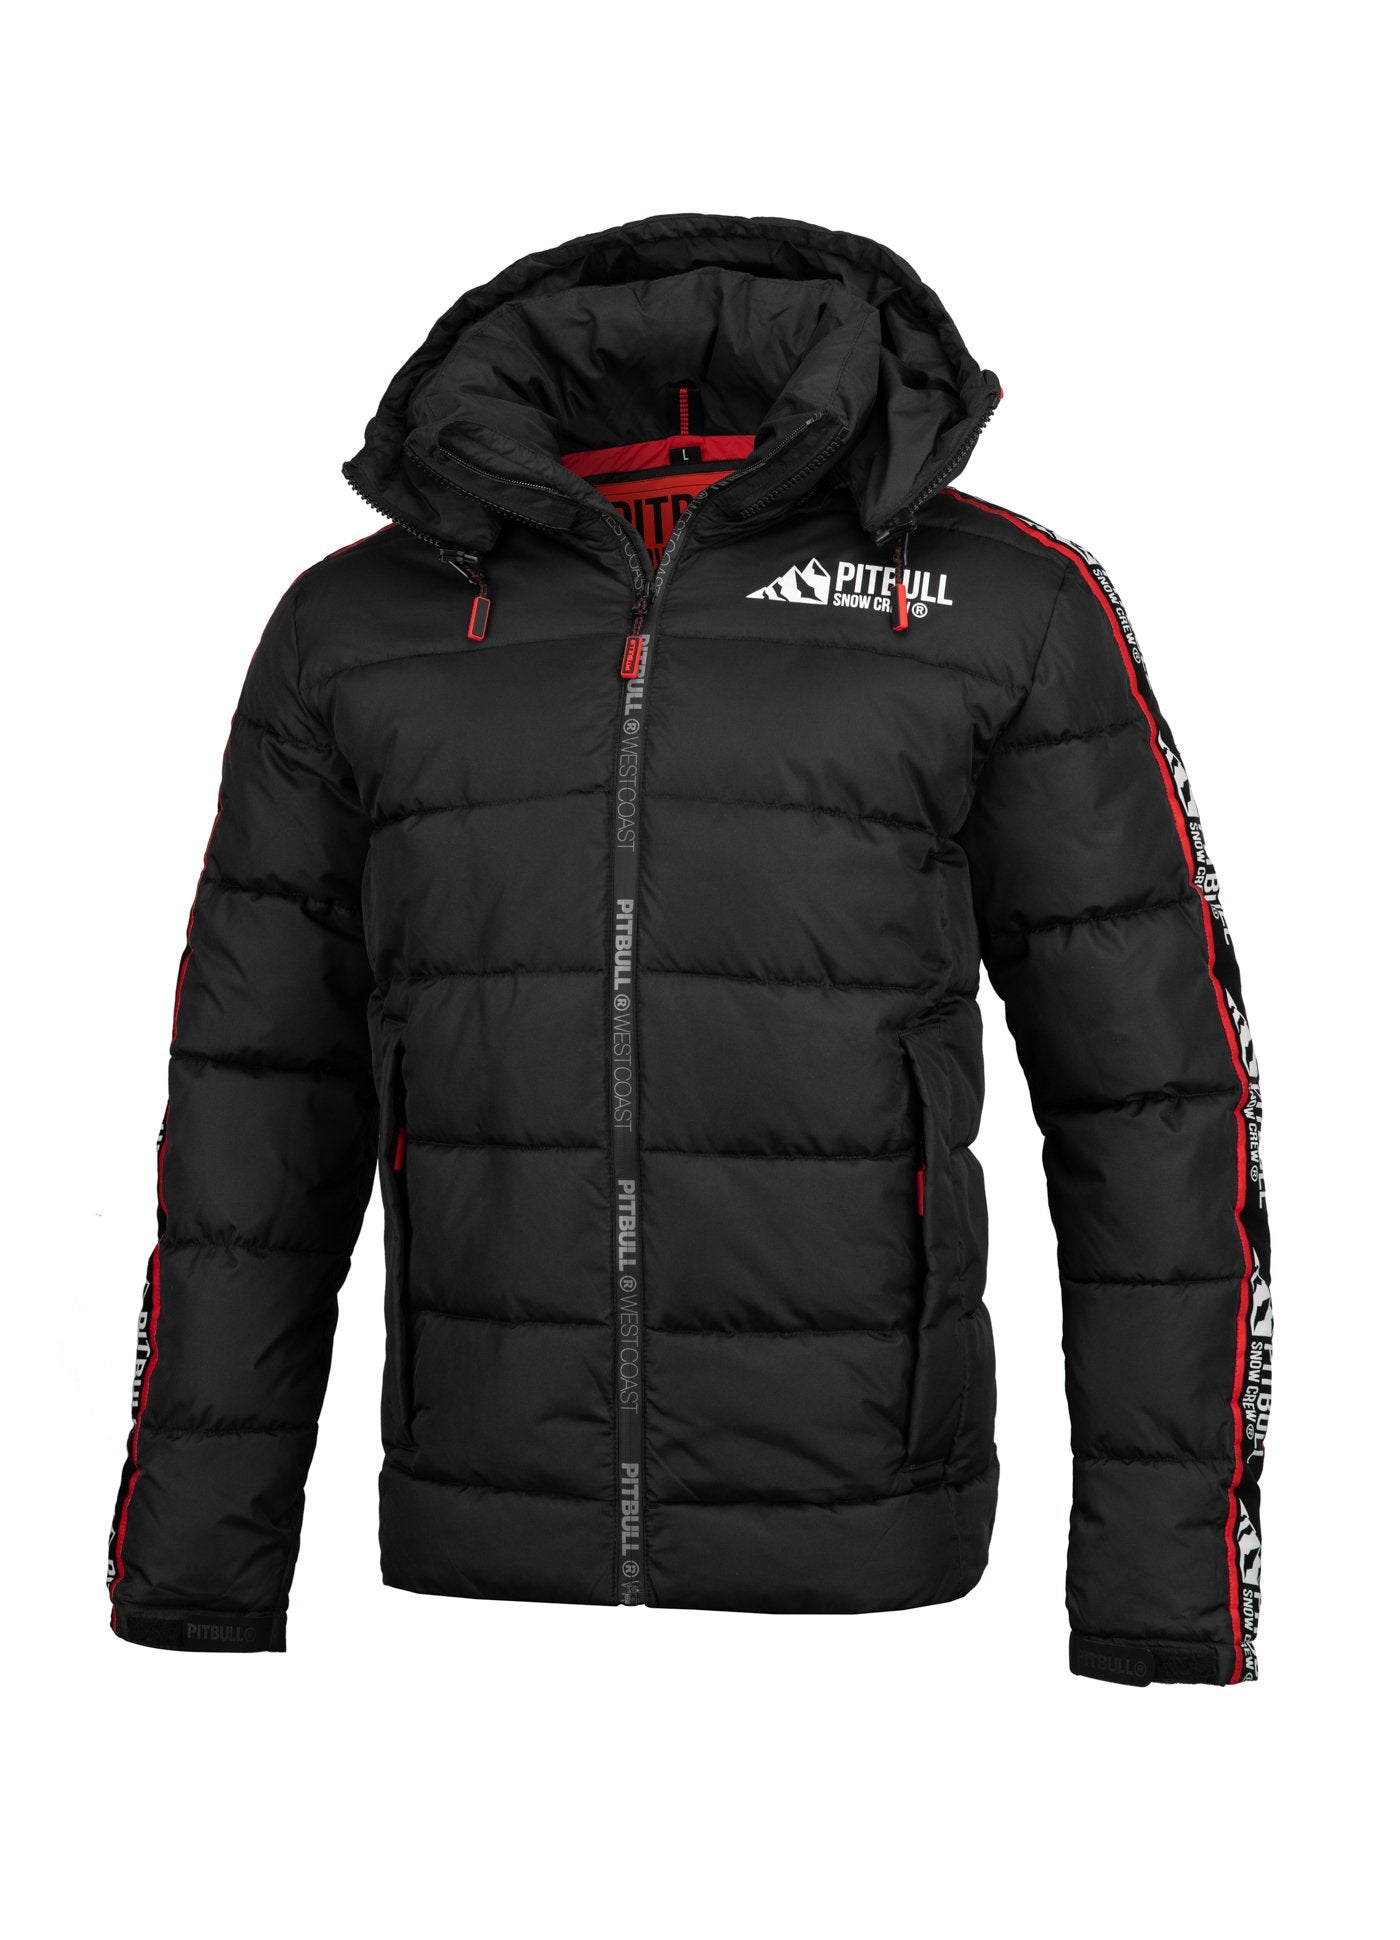 PITBULL WEST COAST WINTER JACKET AIRWAY 2019